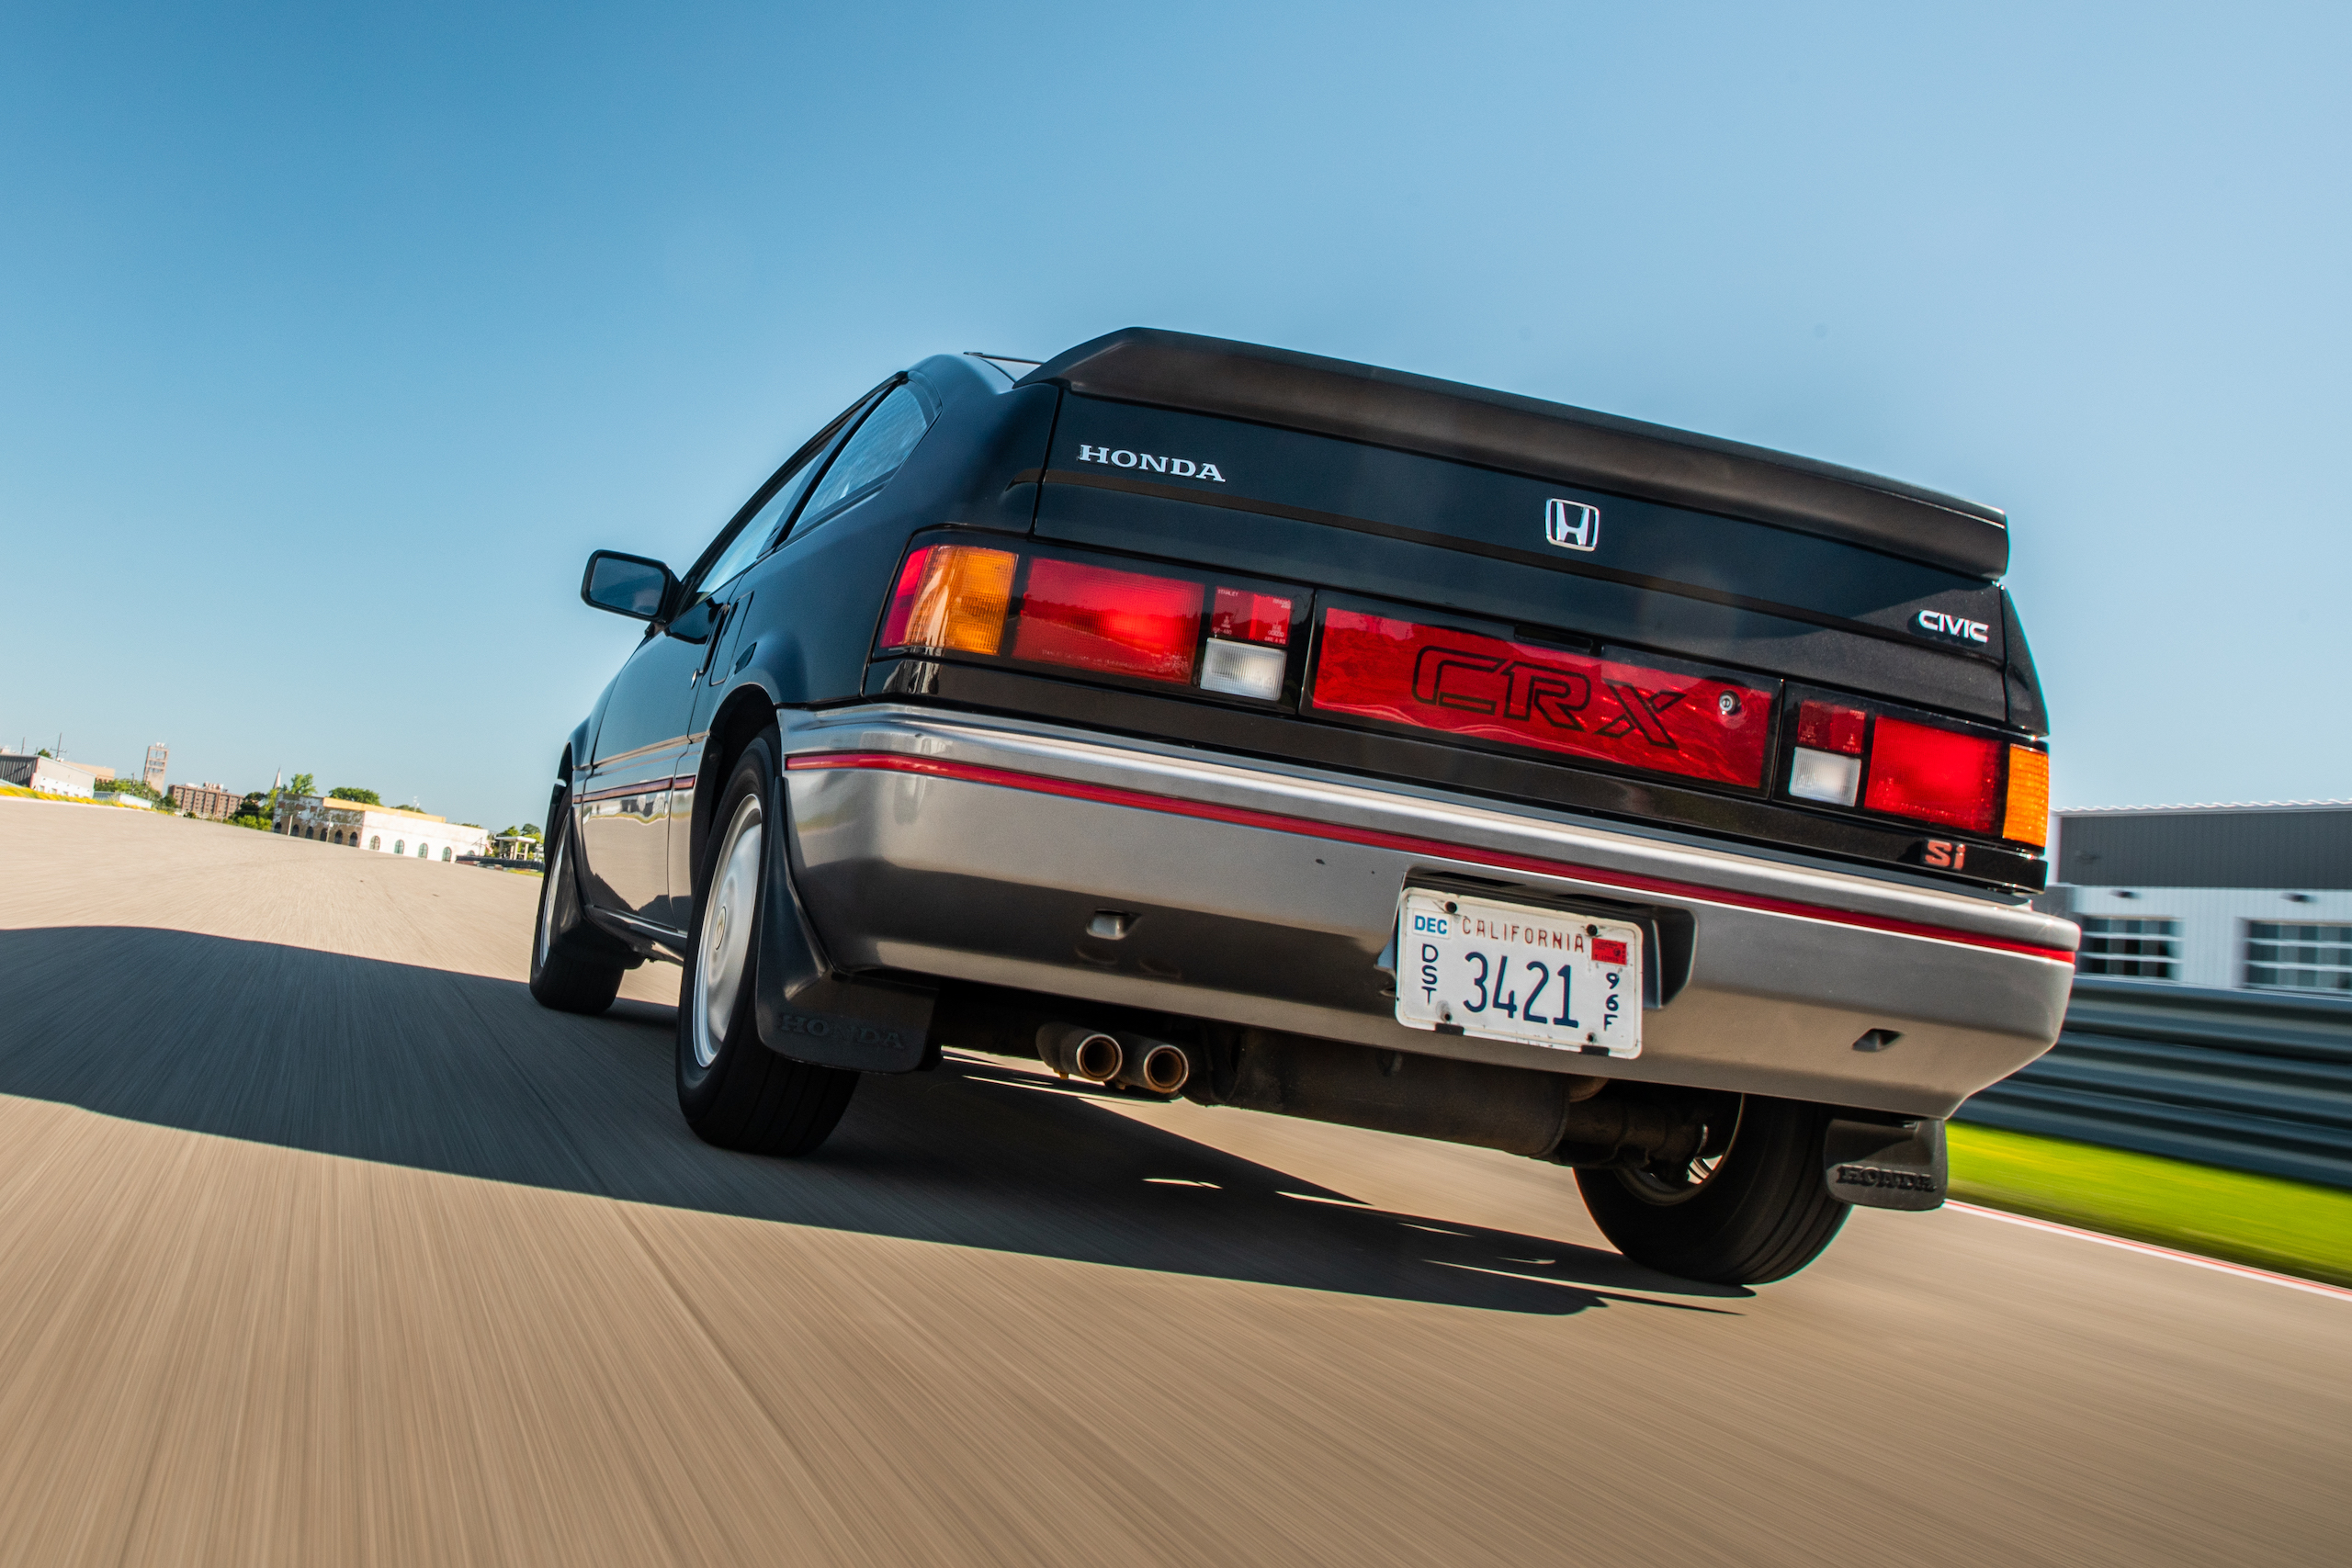 1985 CRX Si rear track action close